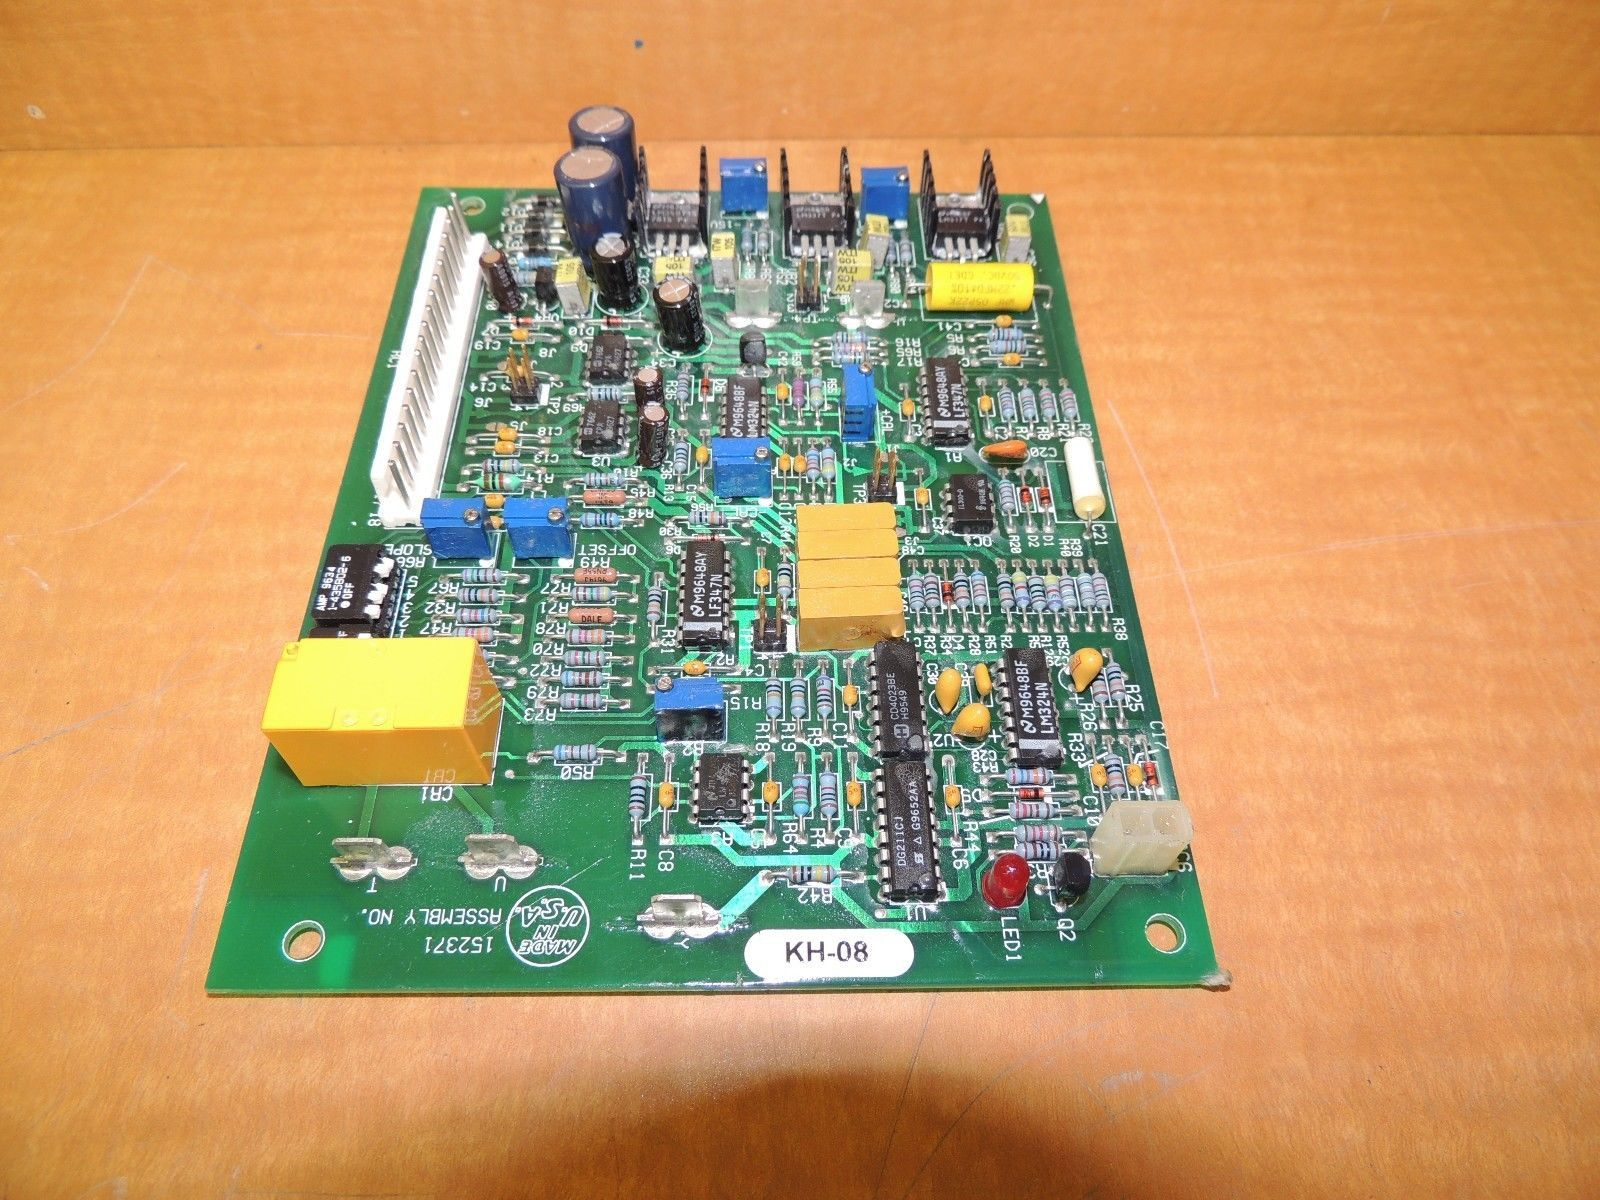 Circuit Card Assembly : Rebuilt miller electric circuit card assembly board pcb